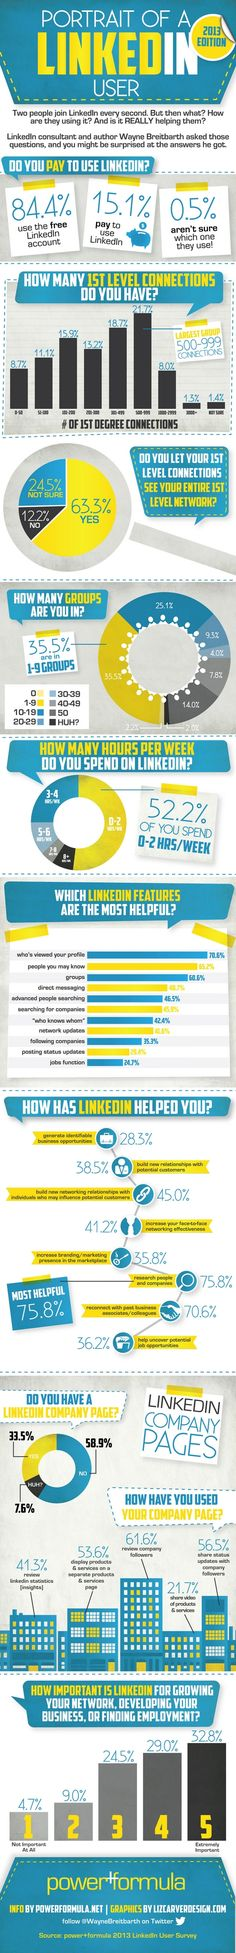 A portrait of a Linkedin User & How They Use the Network Infographic